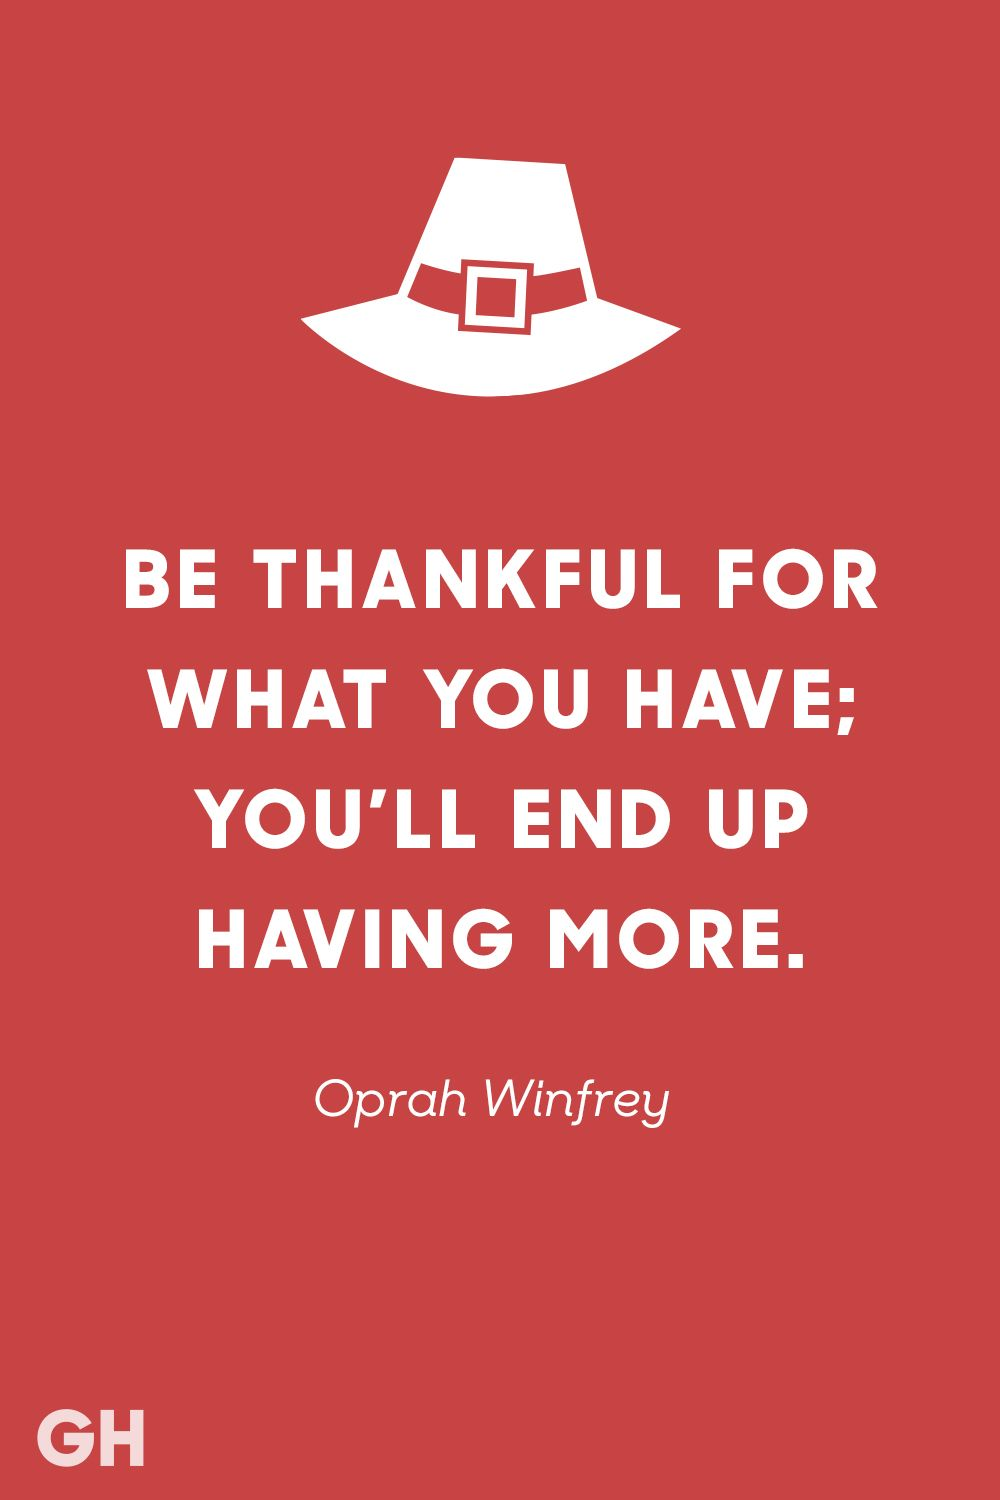 Quotes About Being Thankful | 22 Best Thanksgiving Quotes Inspirational And Funny Quotes About